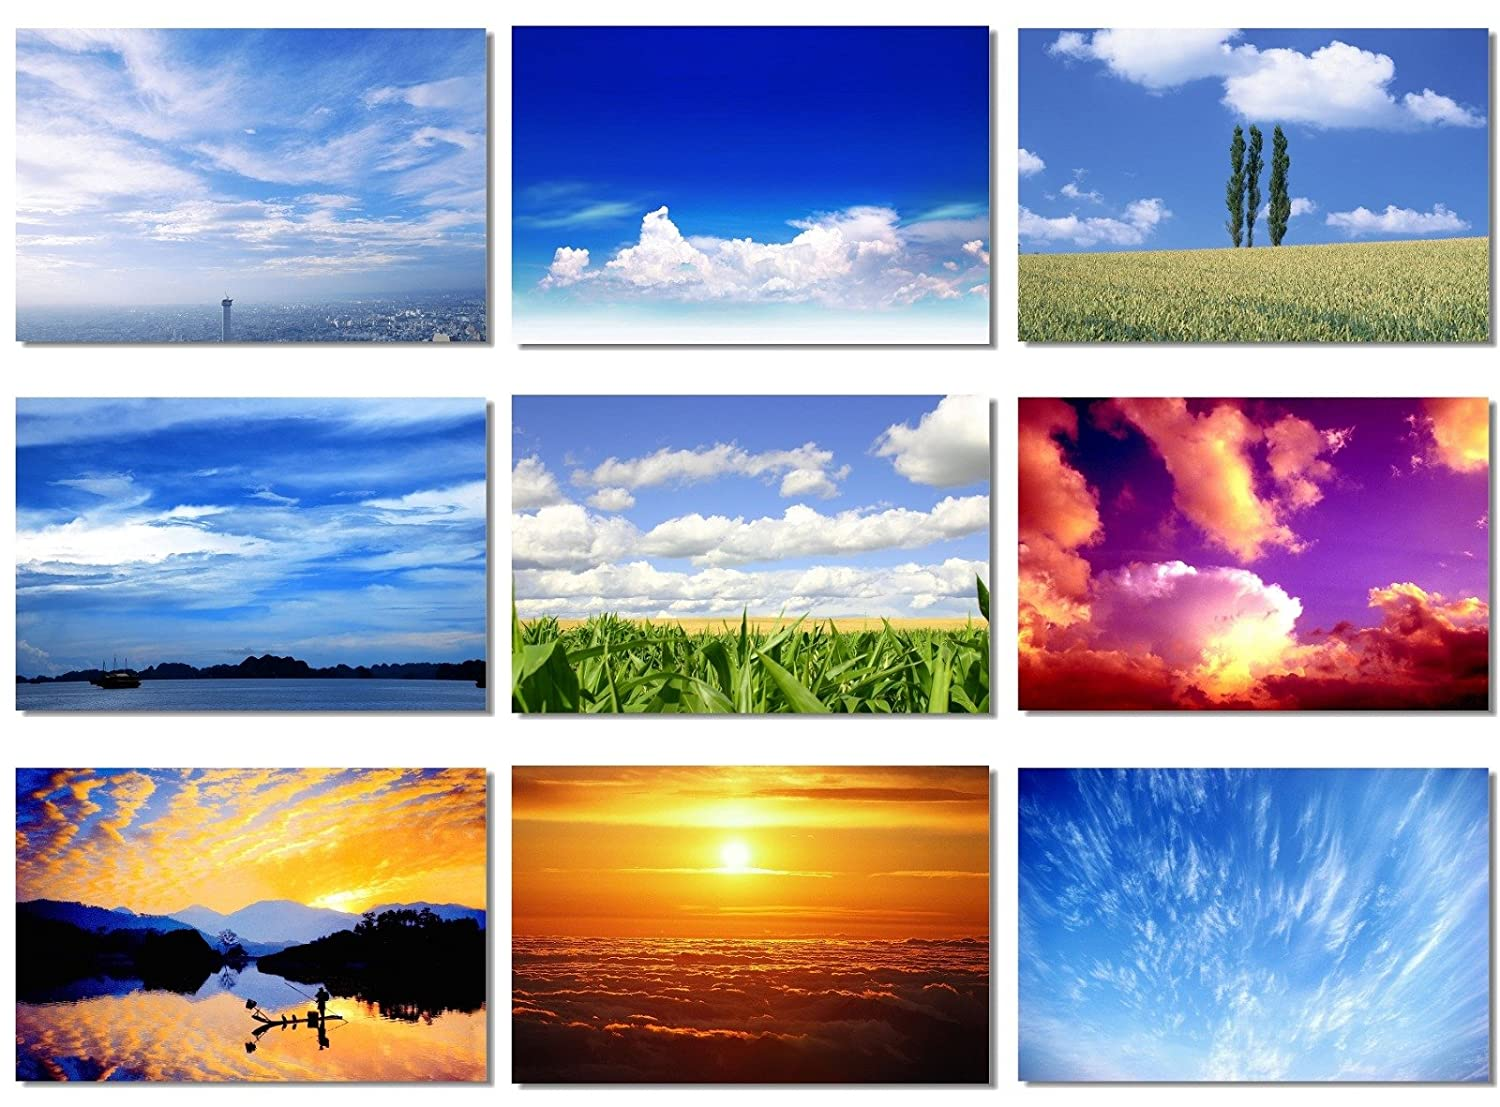 9x Poster Sky Air Cloud Sea Nature Office Room Toilets Decorate Wall Beautiful Scape Landscape View Motivational Prints